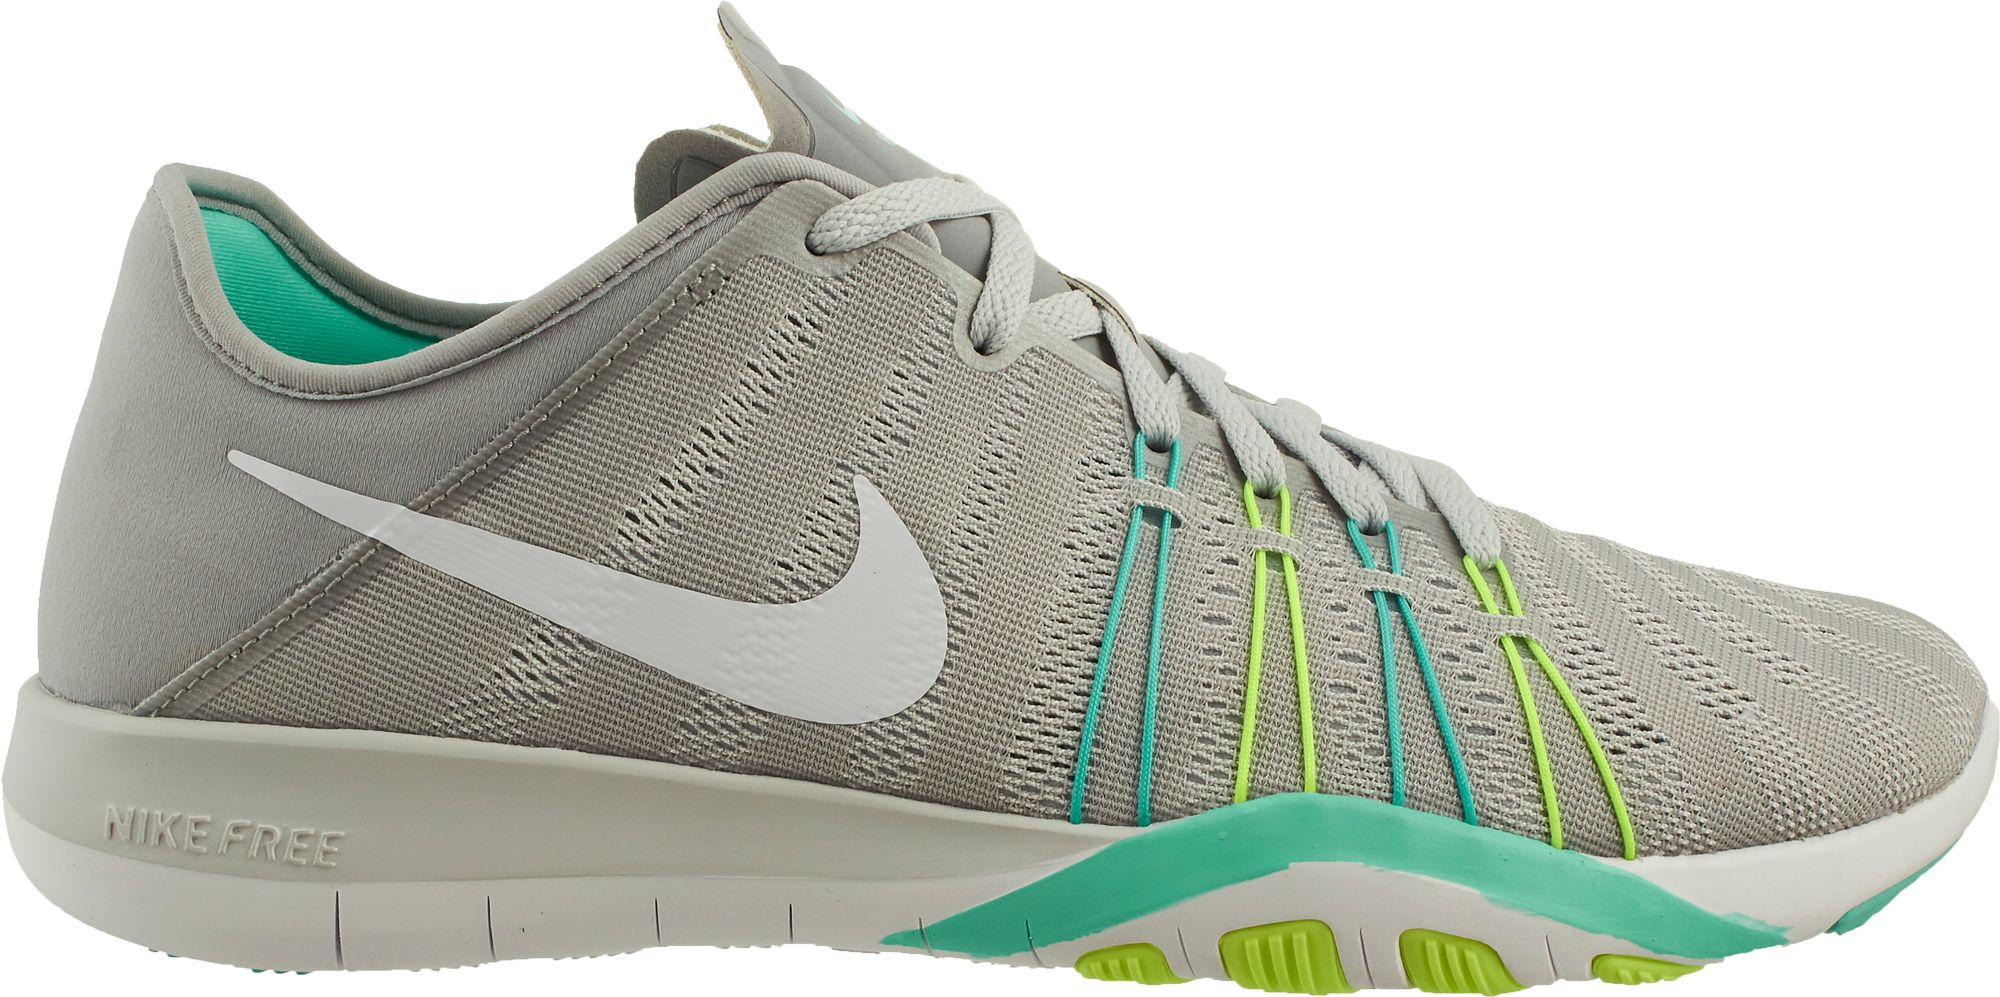 nike free tr 6 amp women's training shoe